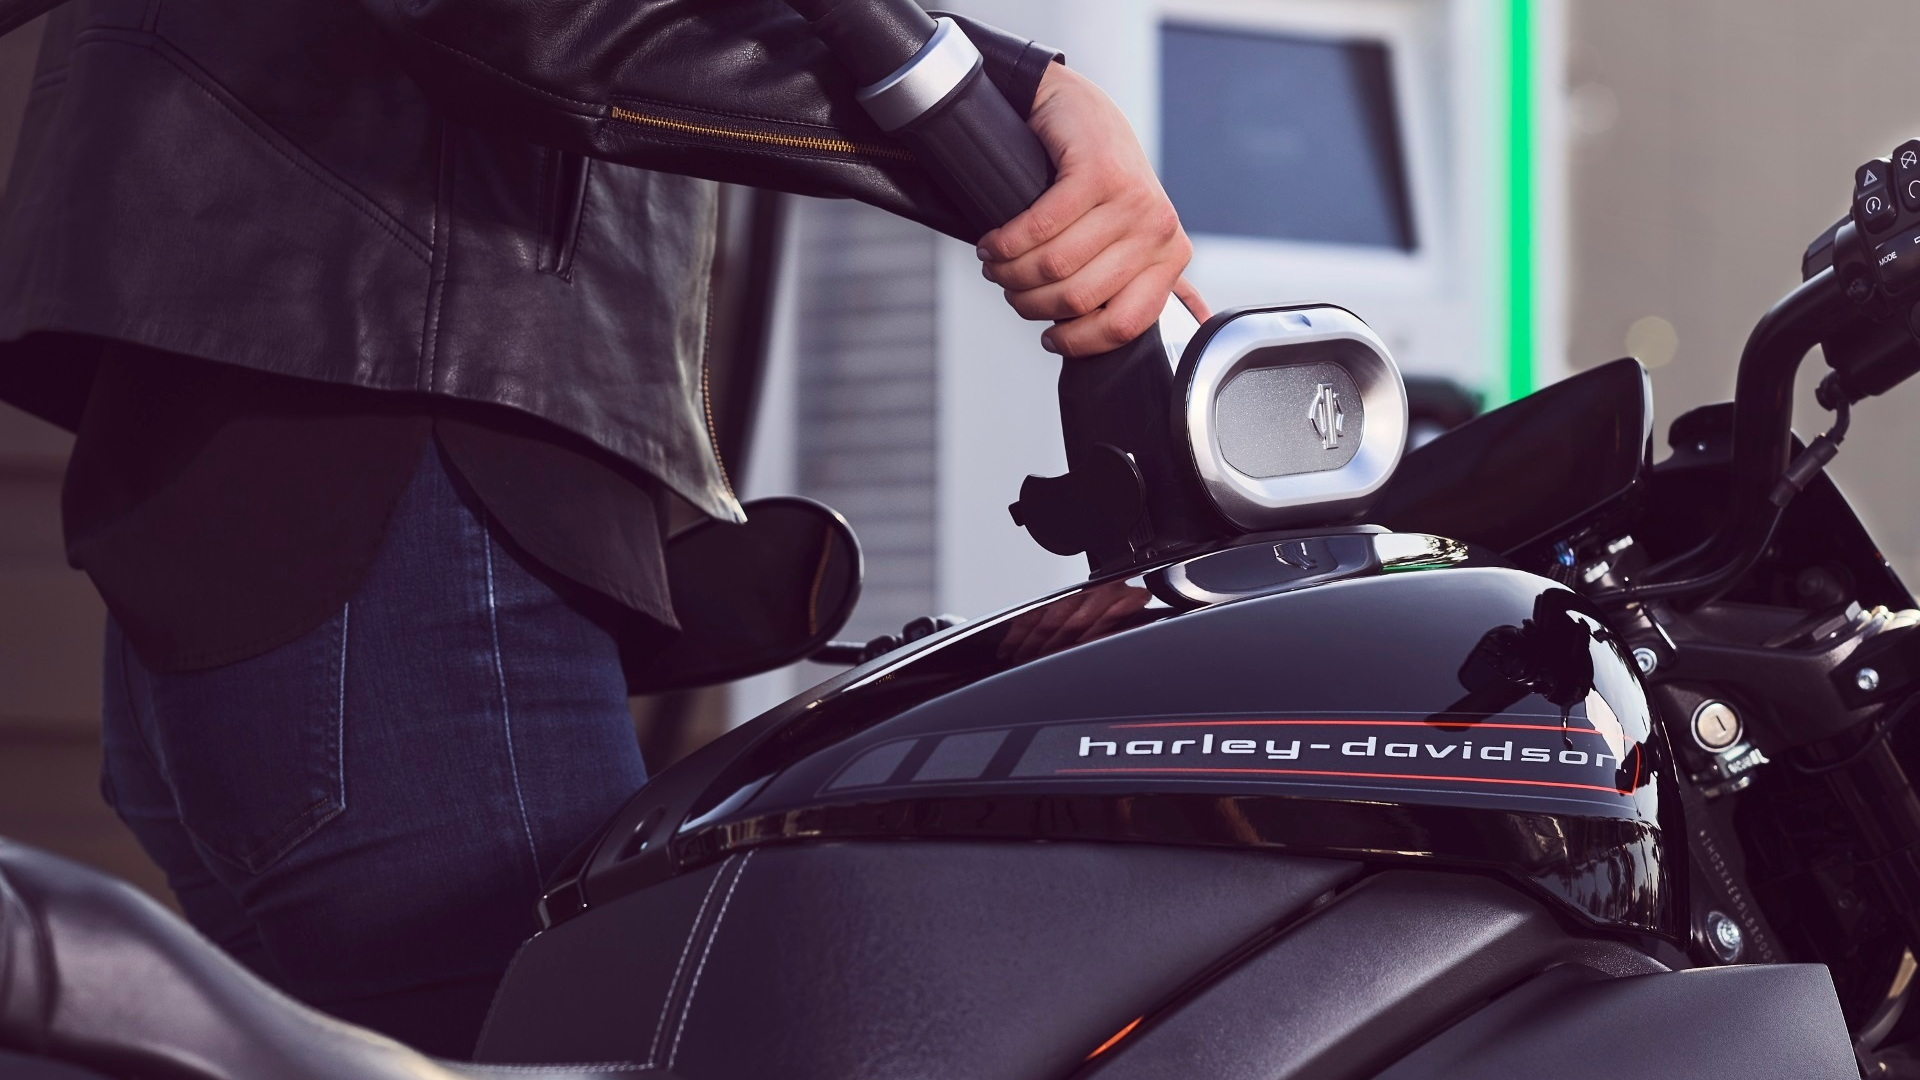 Harley-Davidson LiveWire charging at Electrify America charging station